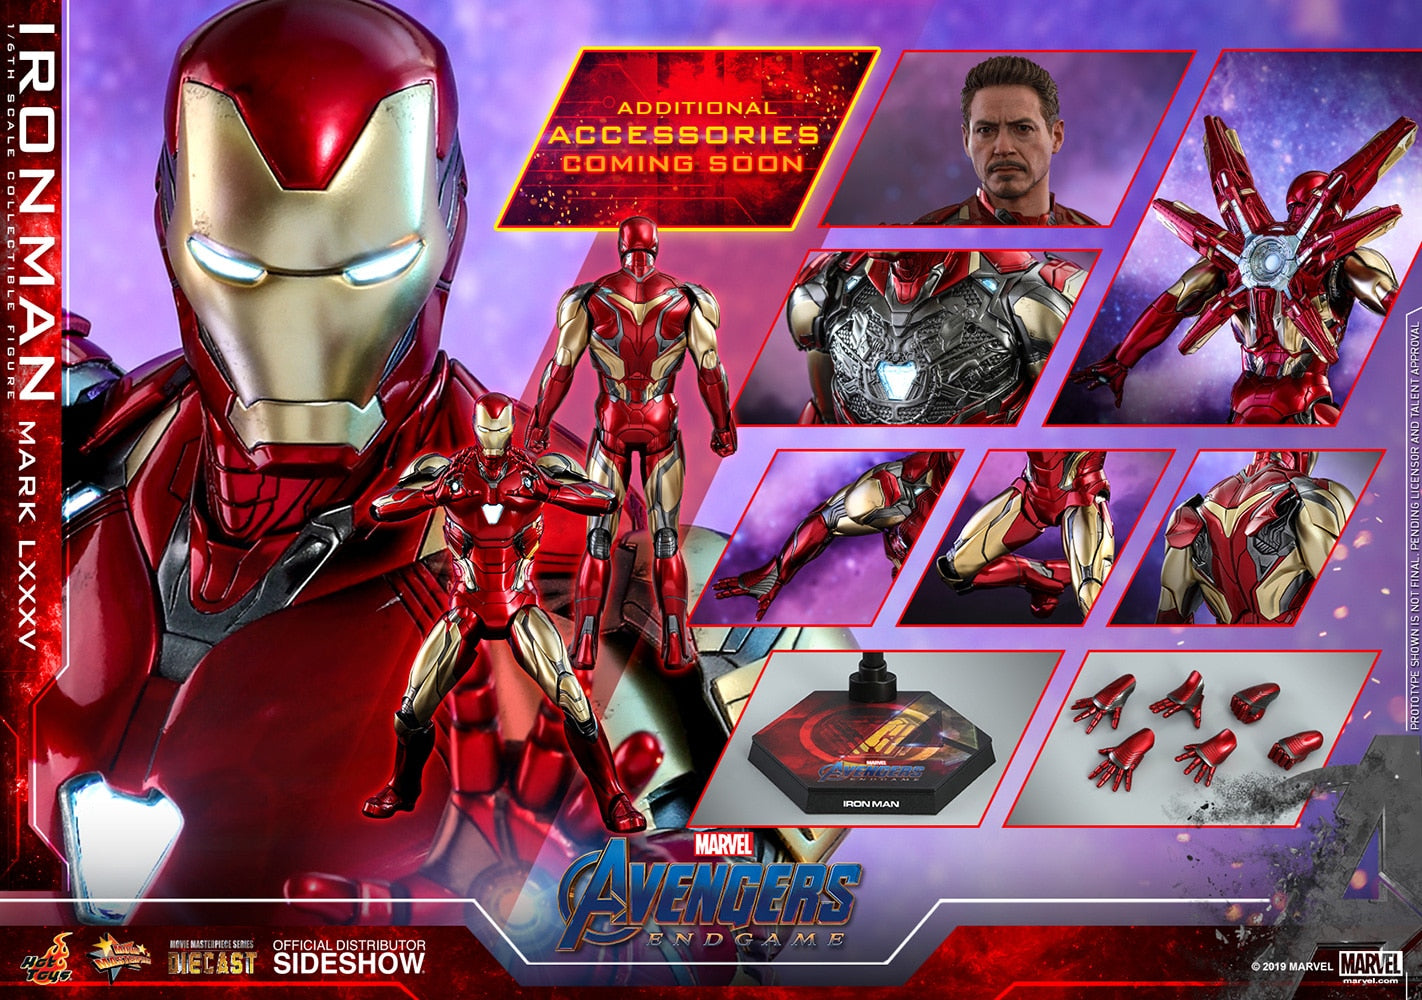 Iron Man Mark LXXXV Marvel Avengers: Endgame Sixth Scale Figure - Collectors Row Inc.